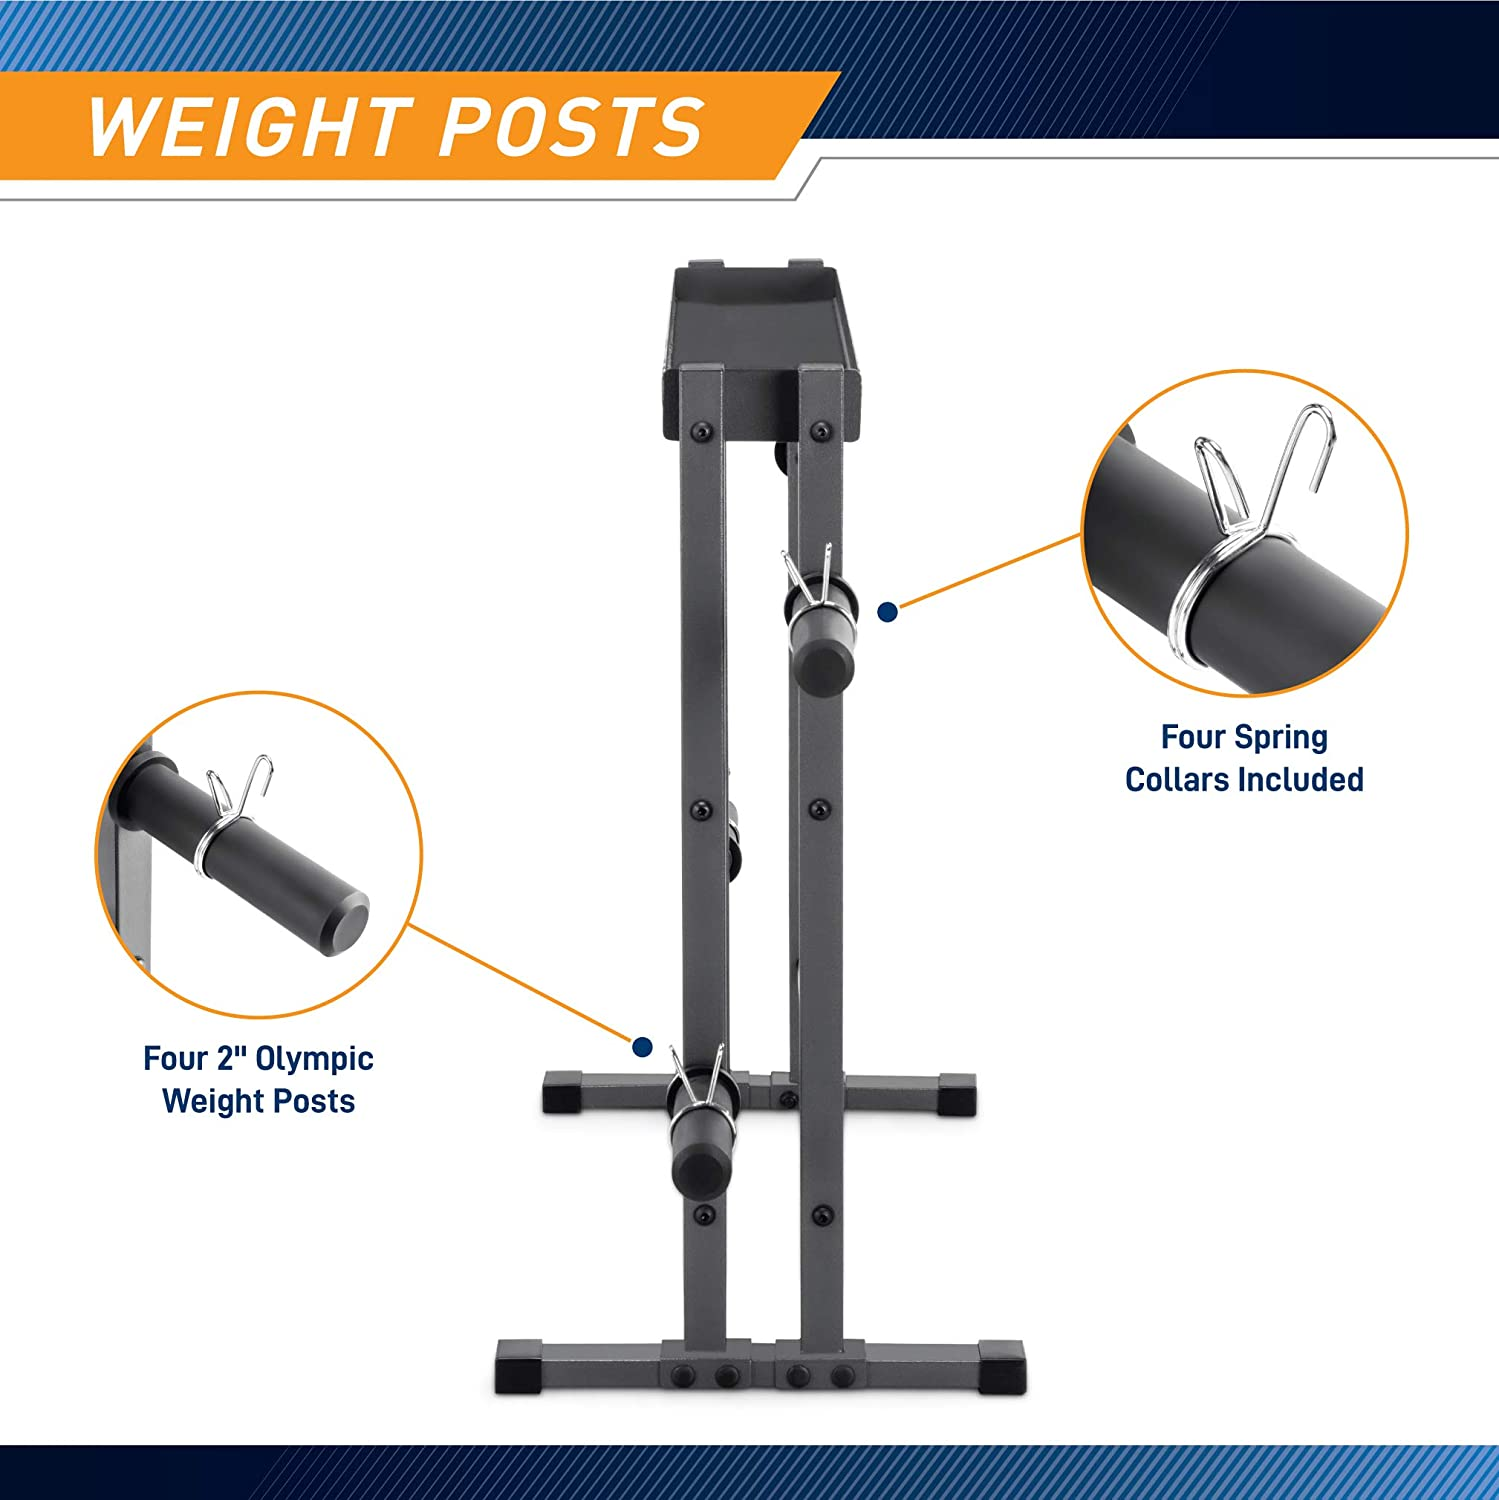 Kettlebells Marcy Combo Weights Storage Rack for Dumbbells and Weight Plates DBR-0117